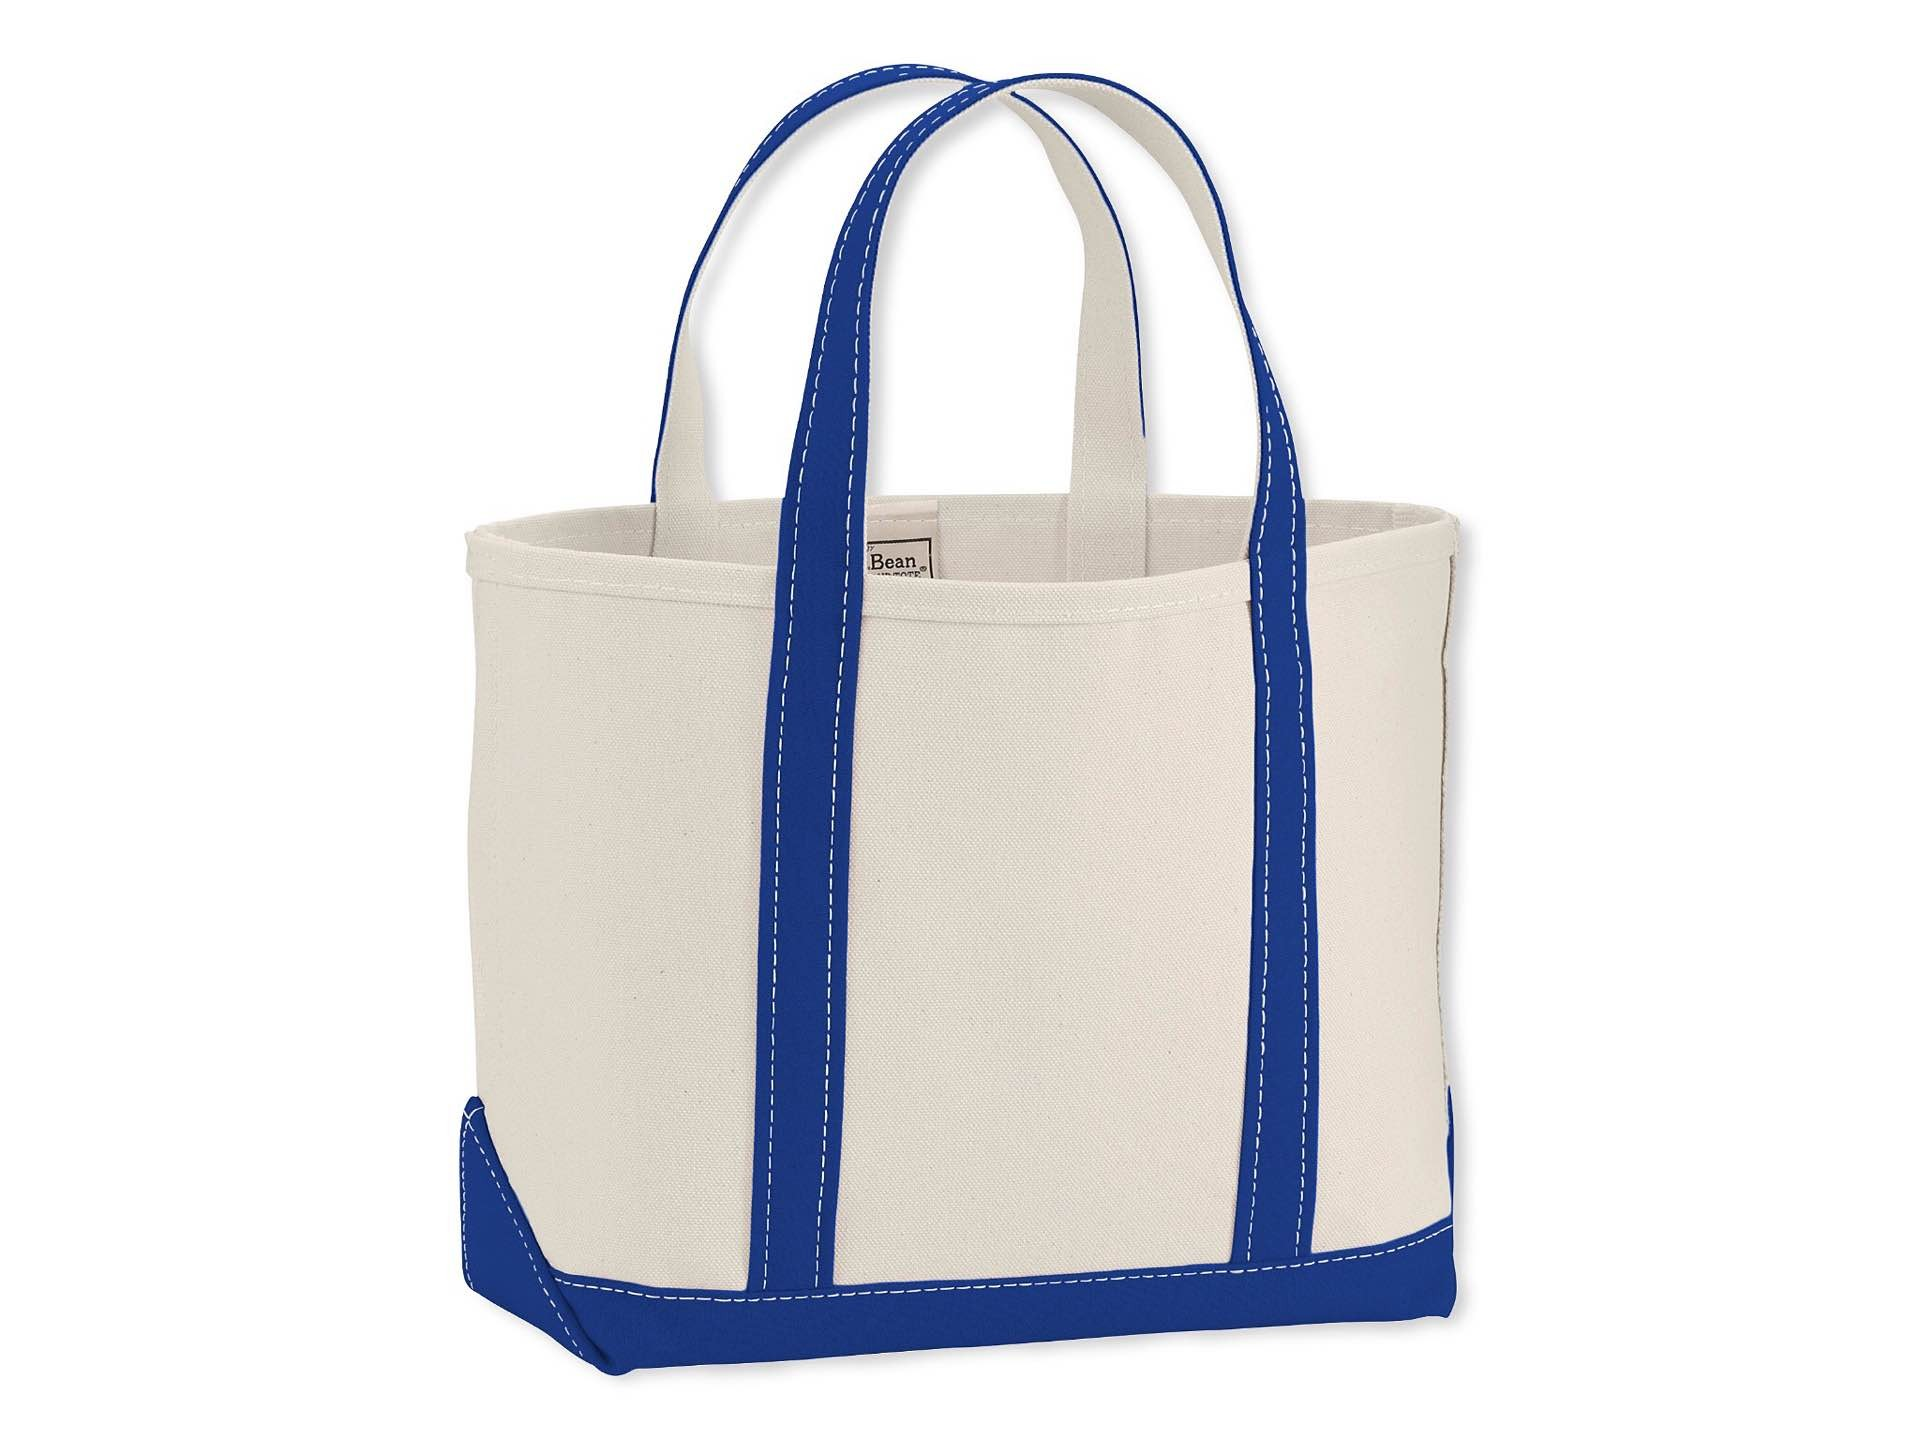 L.L. Bean's Boat and Tote open-top bag. ($25–$45, depending on size)